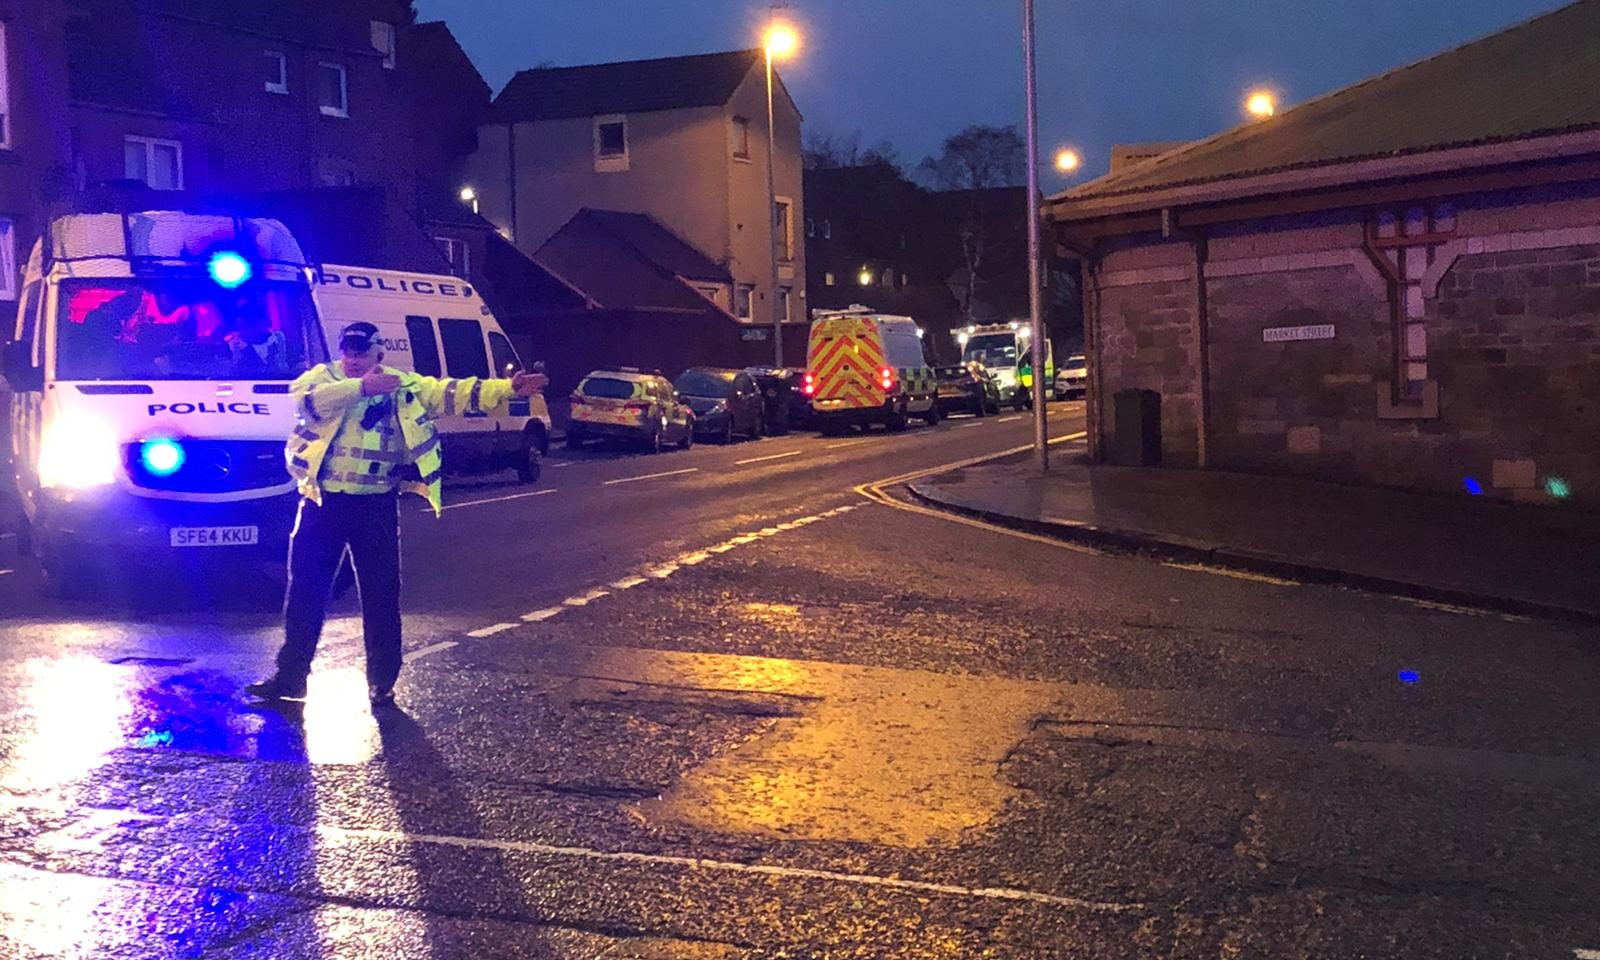 Police on the scene near Broughty Ferry Road.